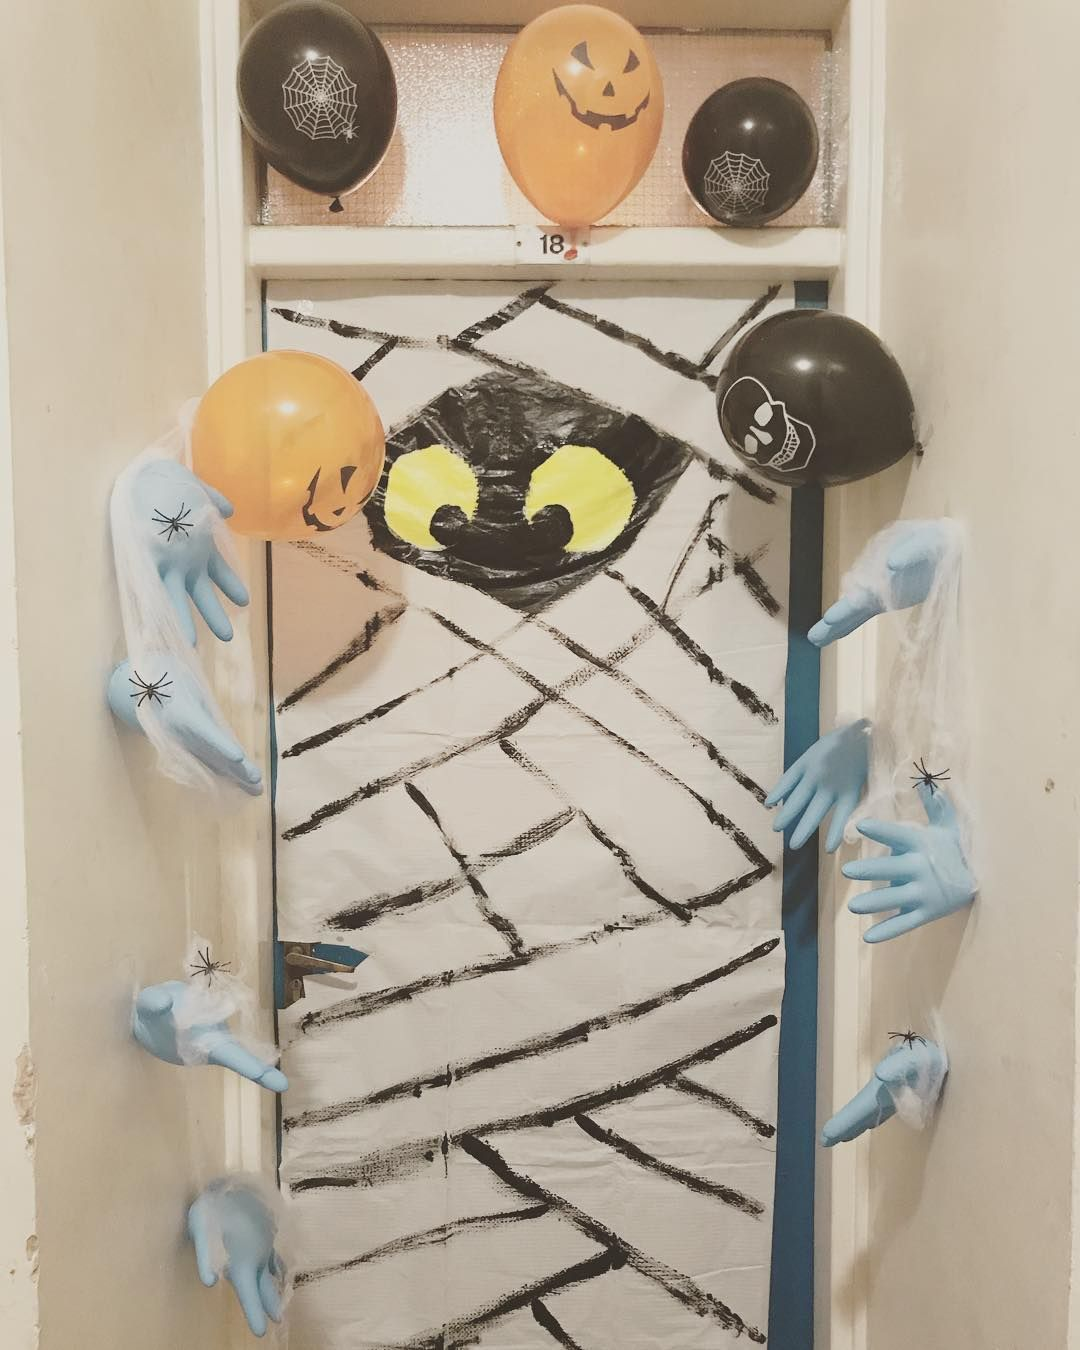 70 Witty Halloween Classroom Door Decorations for Halloween Class Party #halloweenclassroomdoor